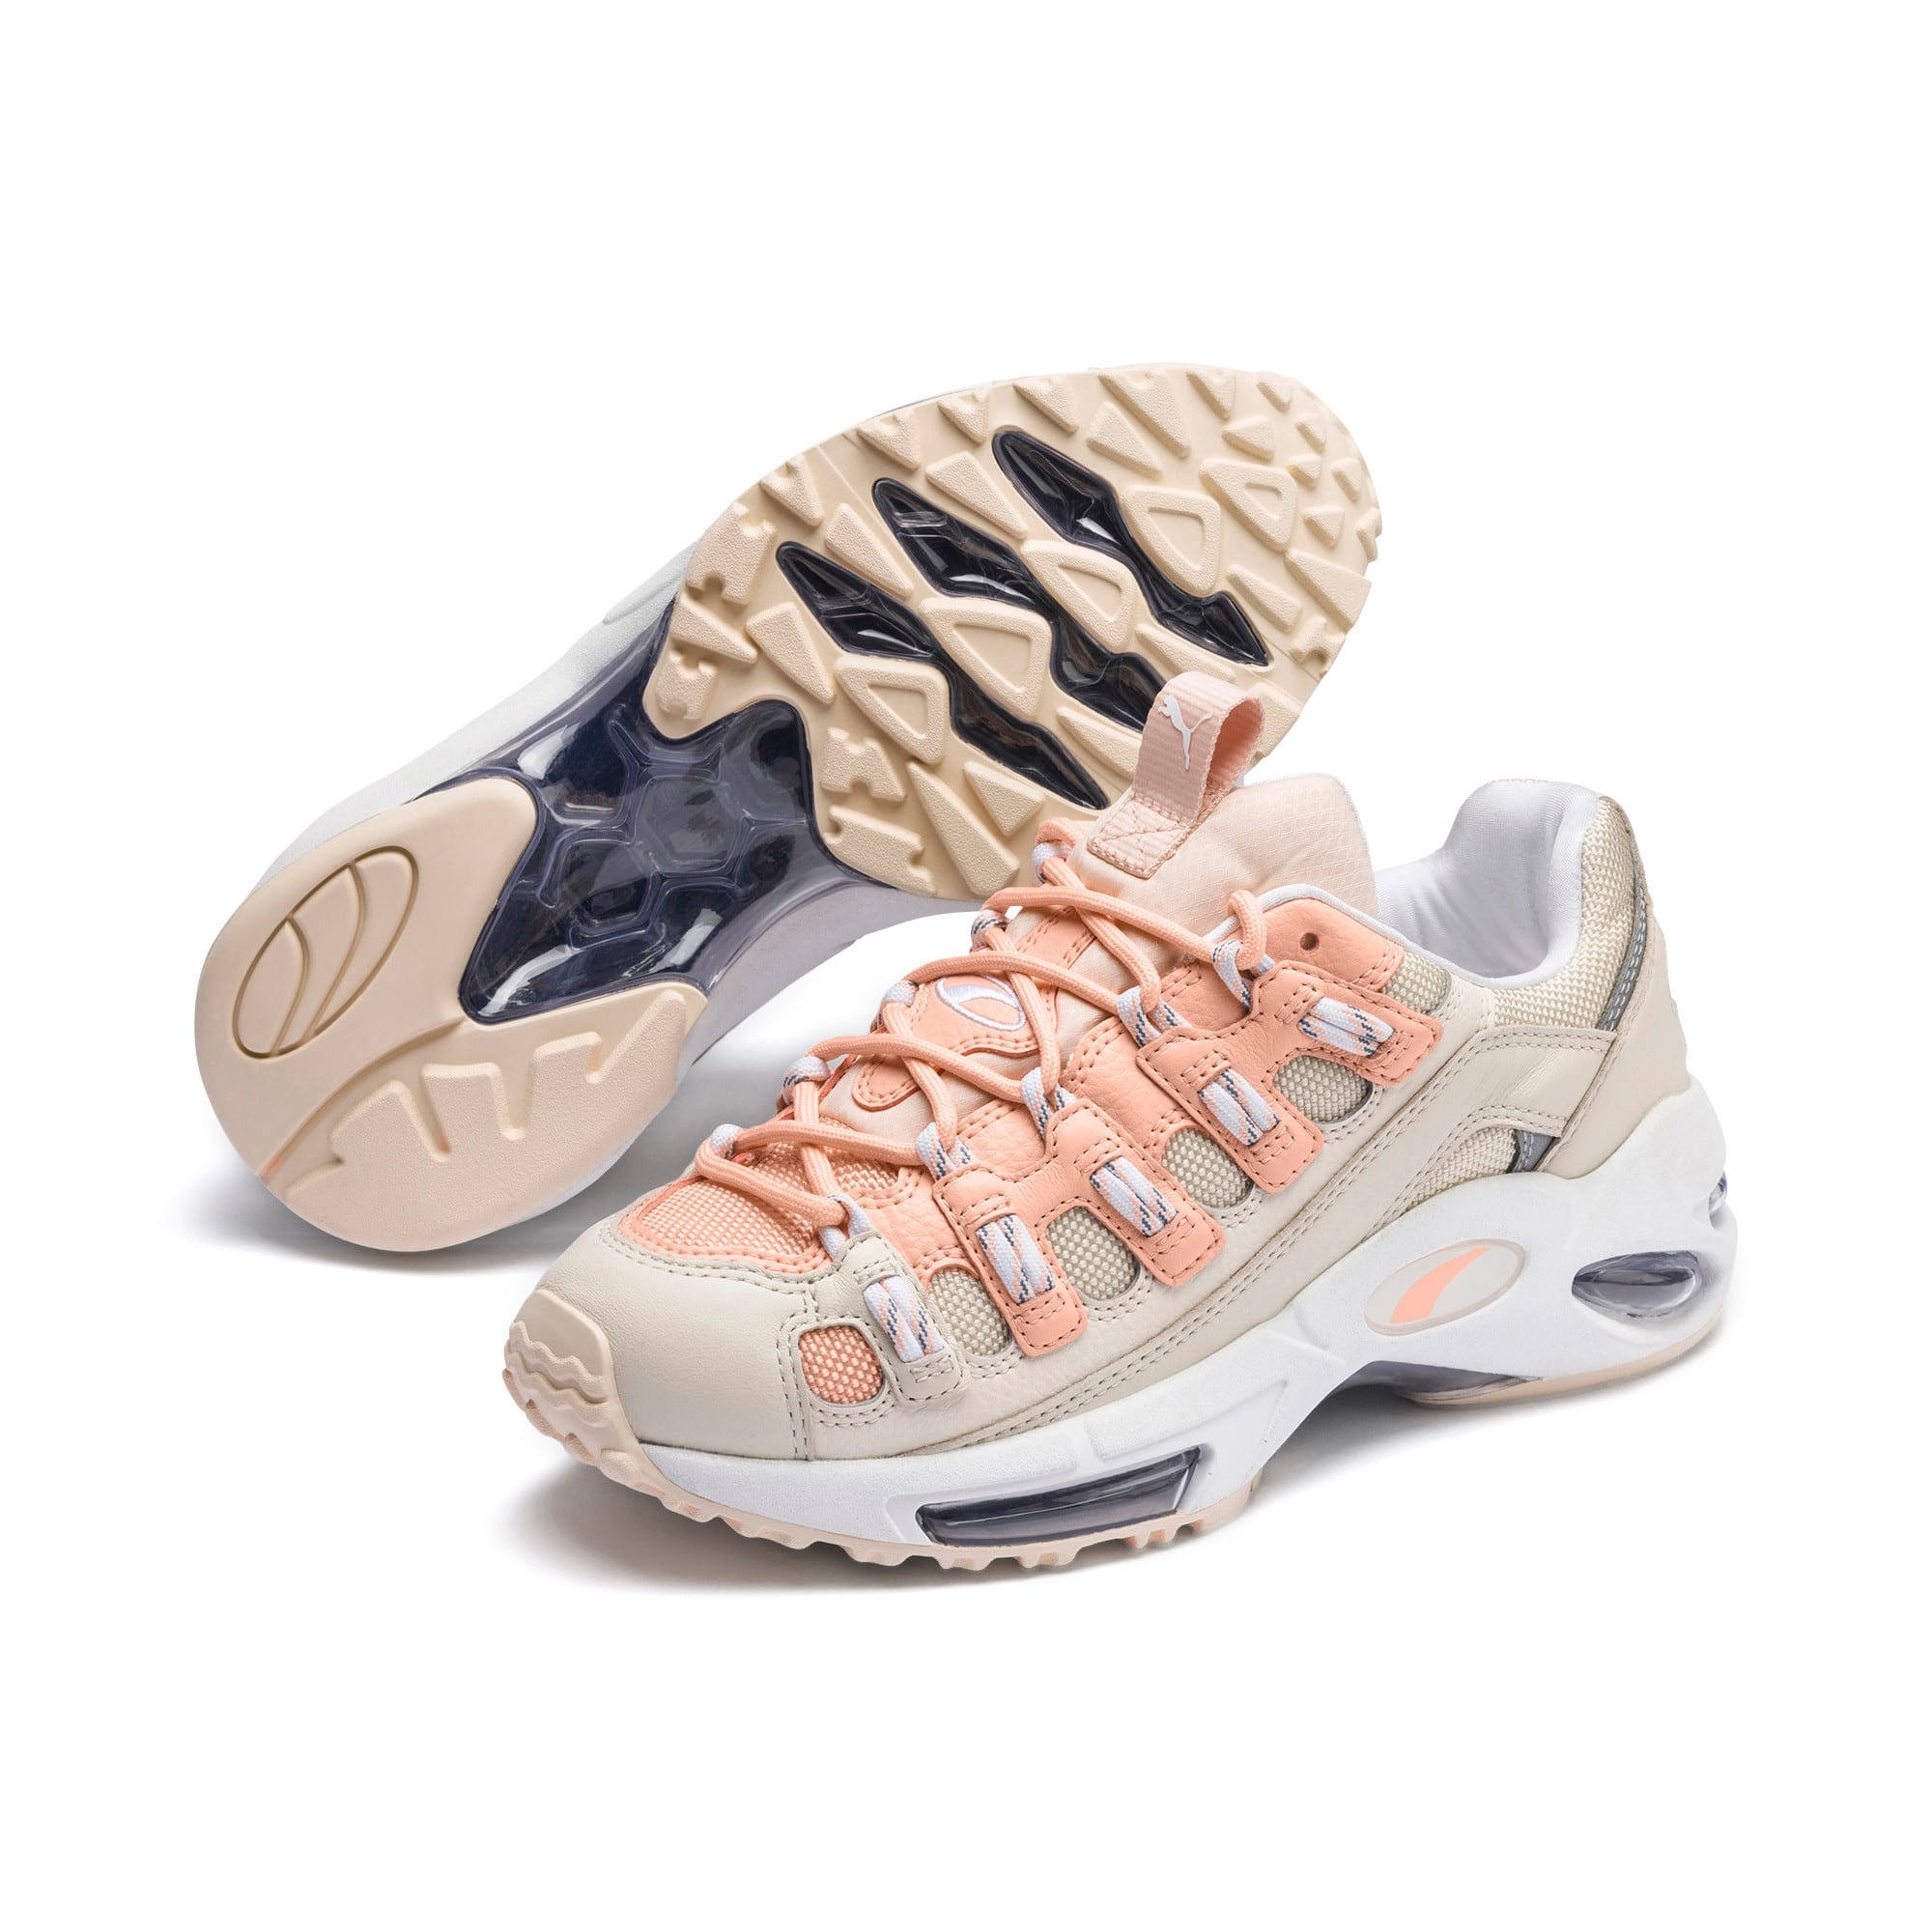 Thumbnail 3 of Scarpe da ginnastica CELL Endura Rebound, Peach Parfait-White Smoke, medium